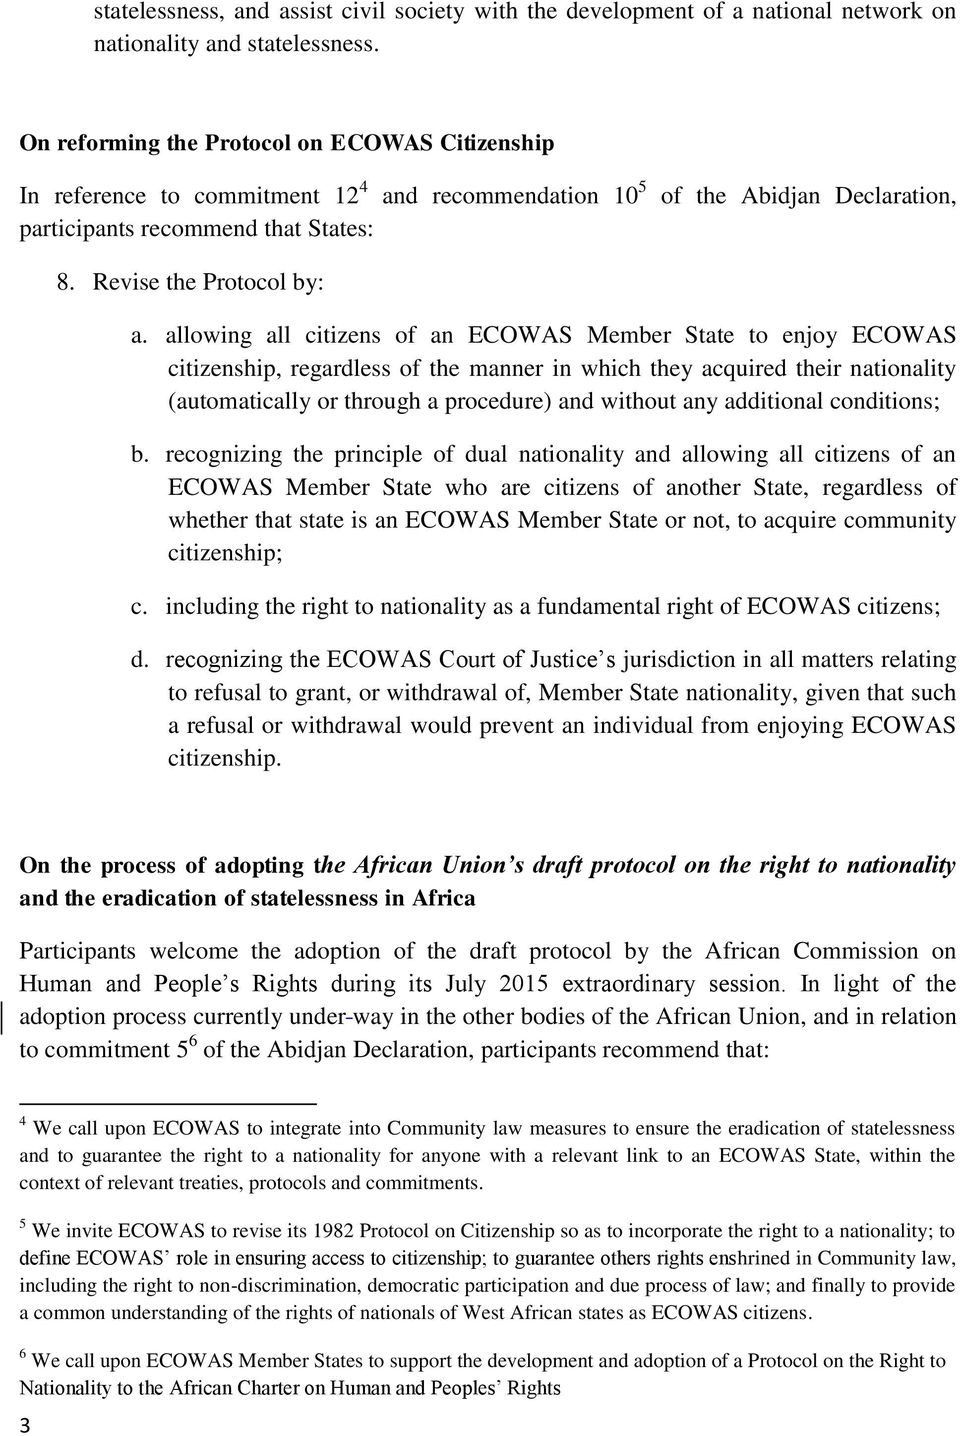 allowing all citizens of an ECOWAS Member State to enjoy ECOWAS citizenship, regardless of the manner in which they acquired their nationality (automatically or through a procedure) and without any